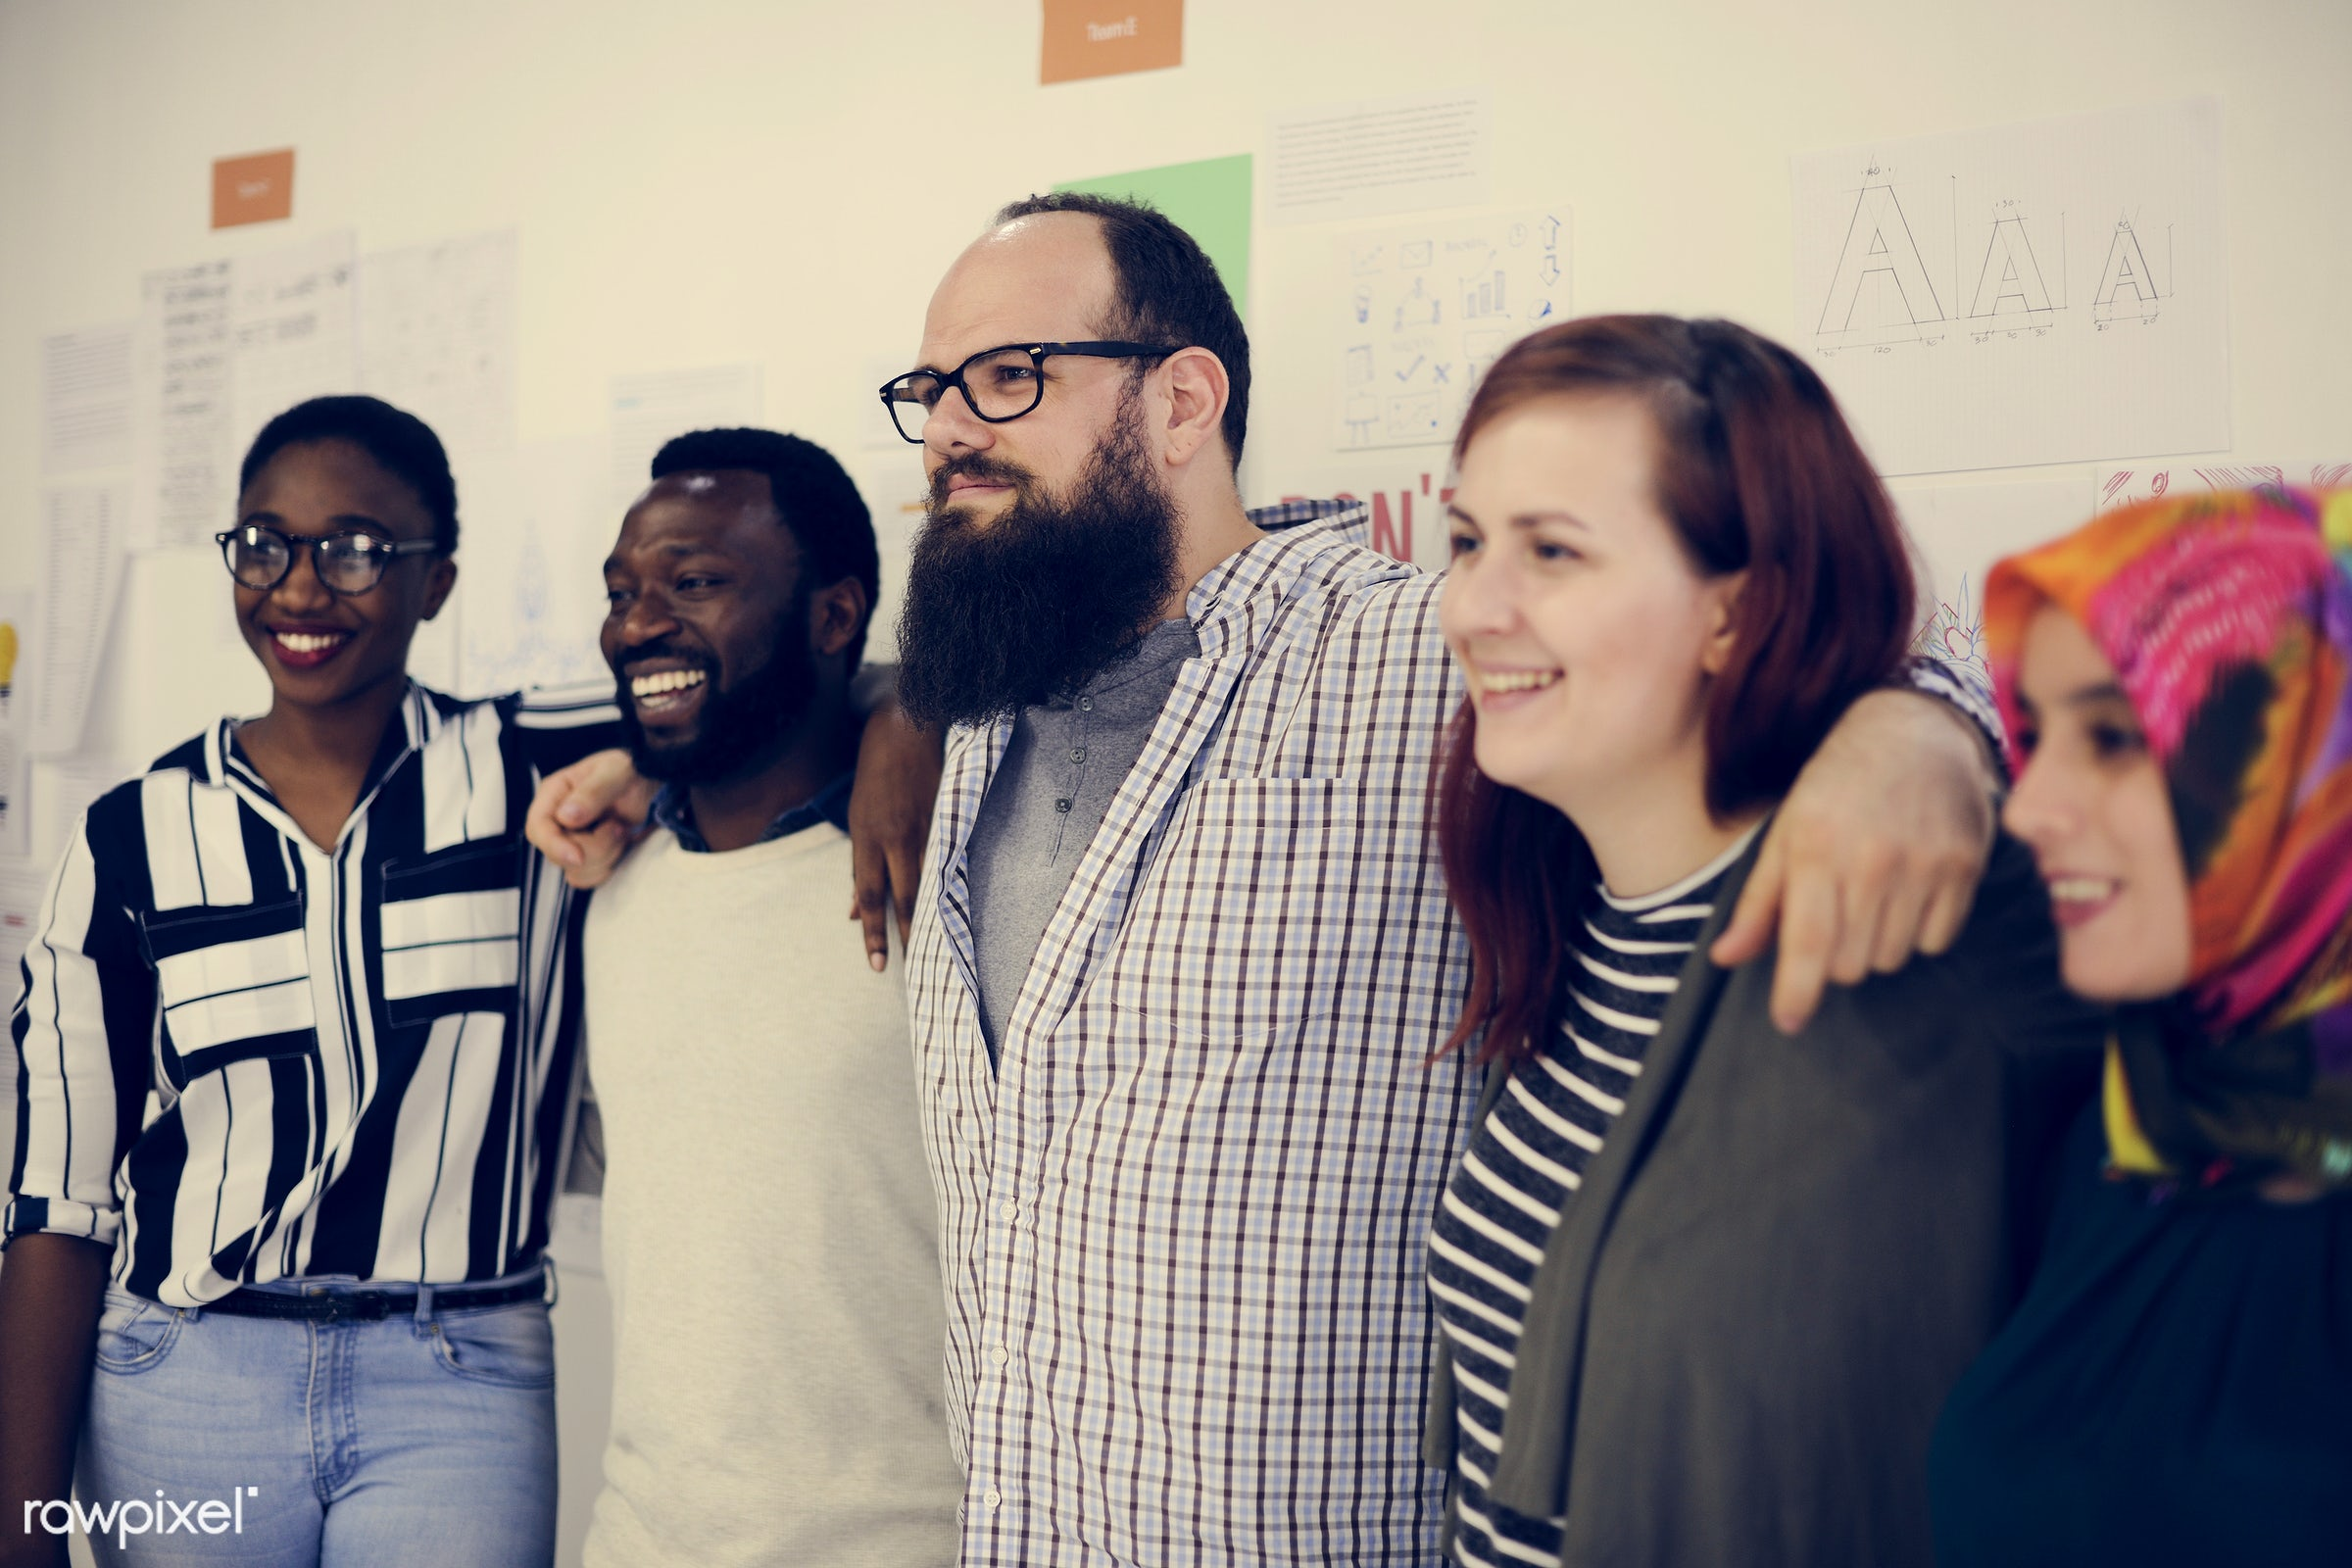 african descent, attend, black, brainstorm, business, casual, caucasian, class, colleagues, company, course, coworking,...